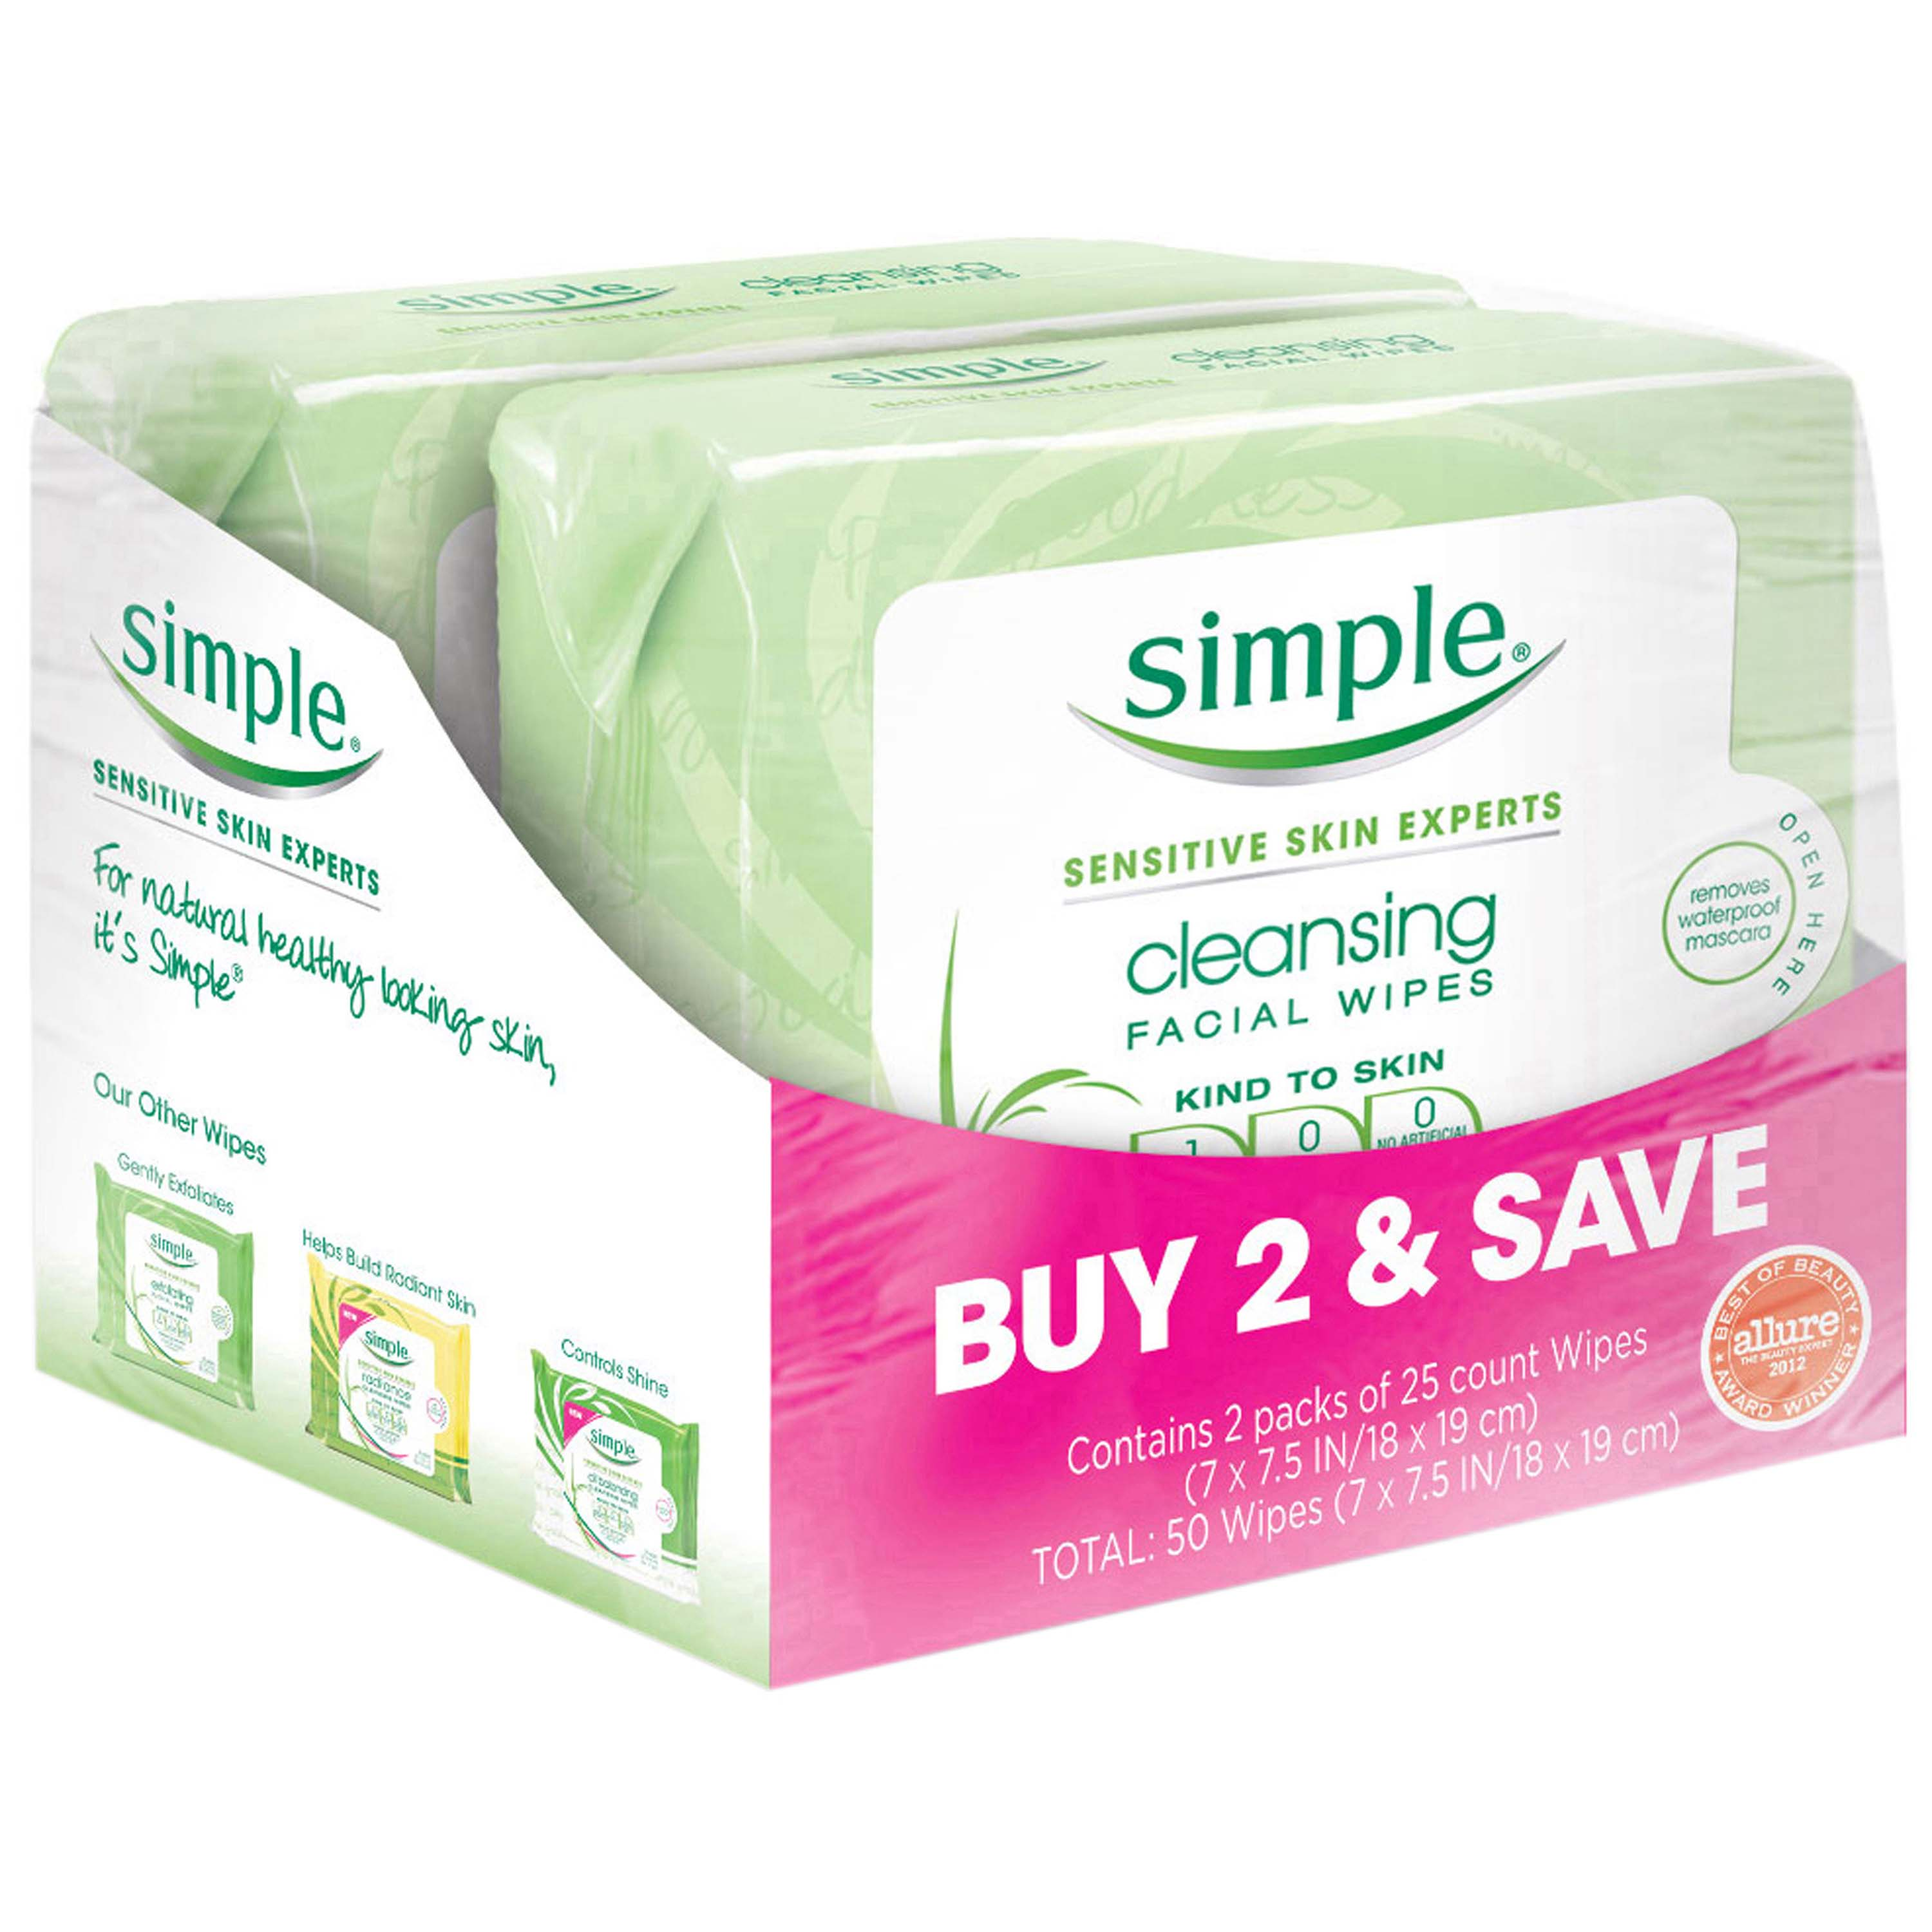 Simple for Sensitive Skin Face Cleansing Wipes, 25 ct, Twin Pack